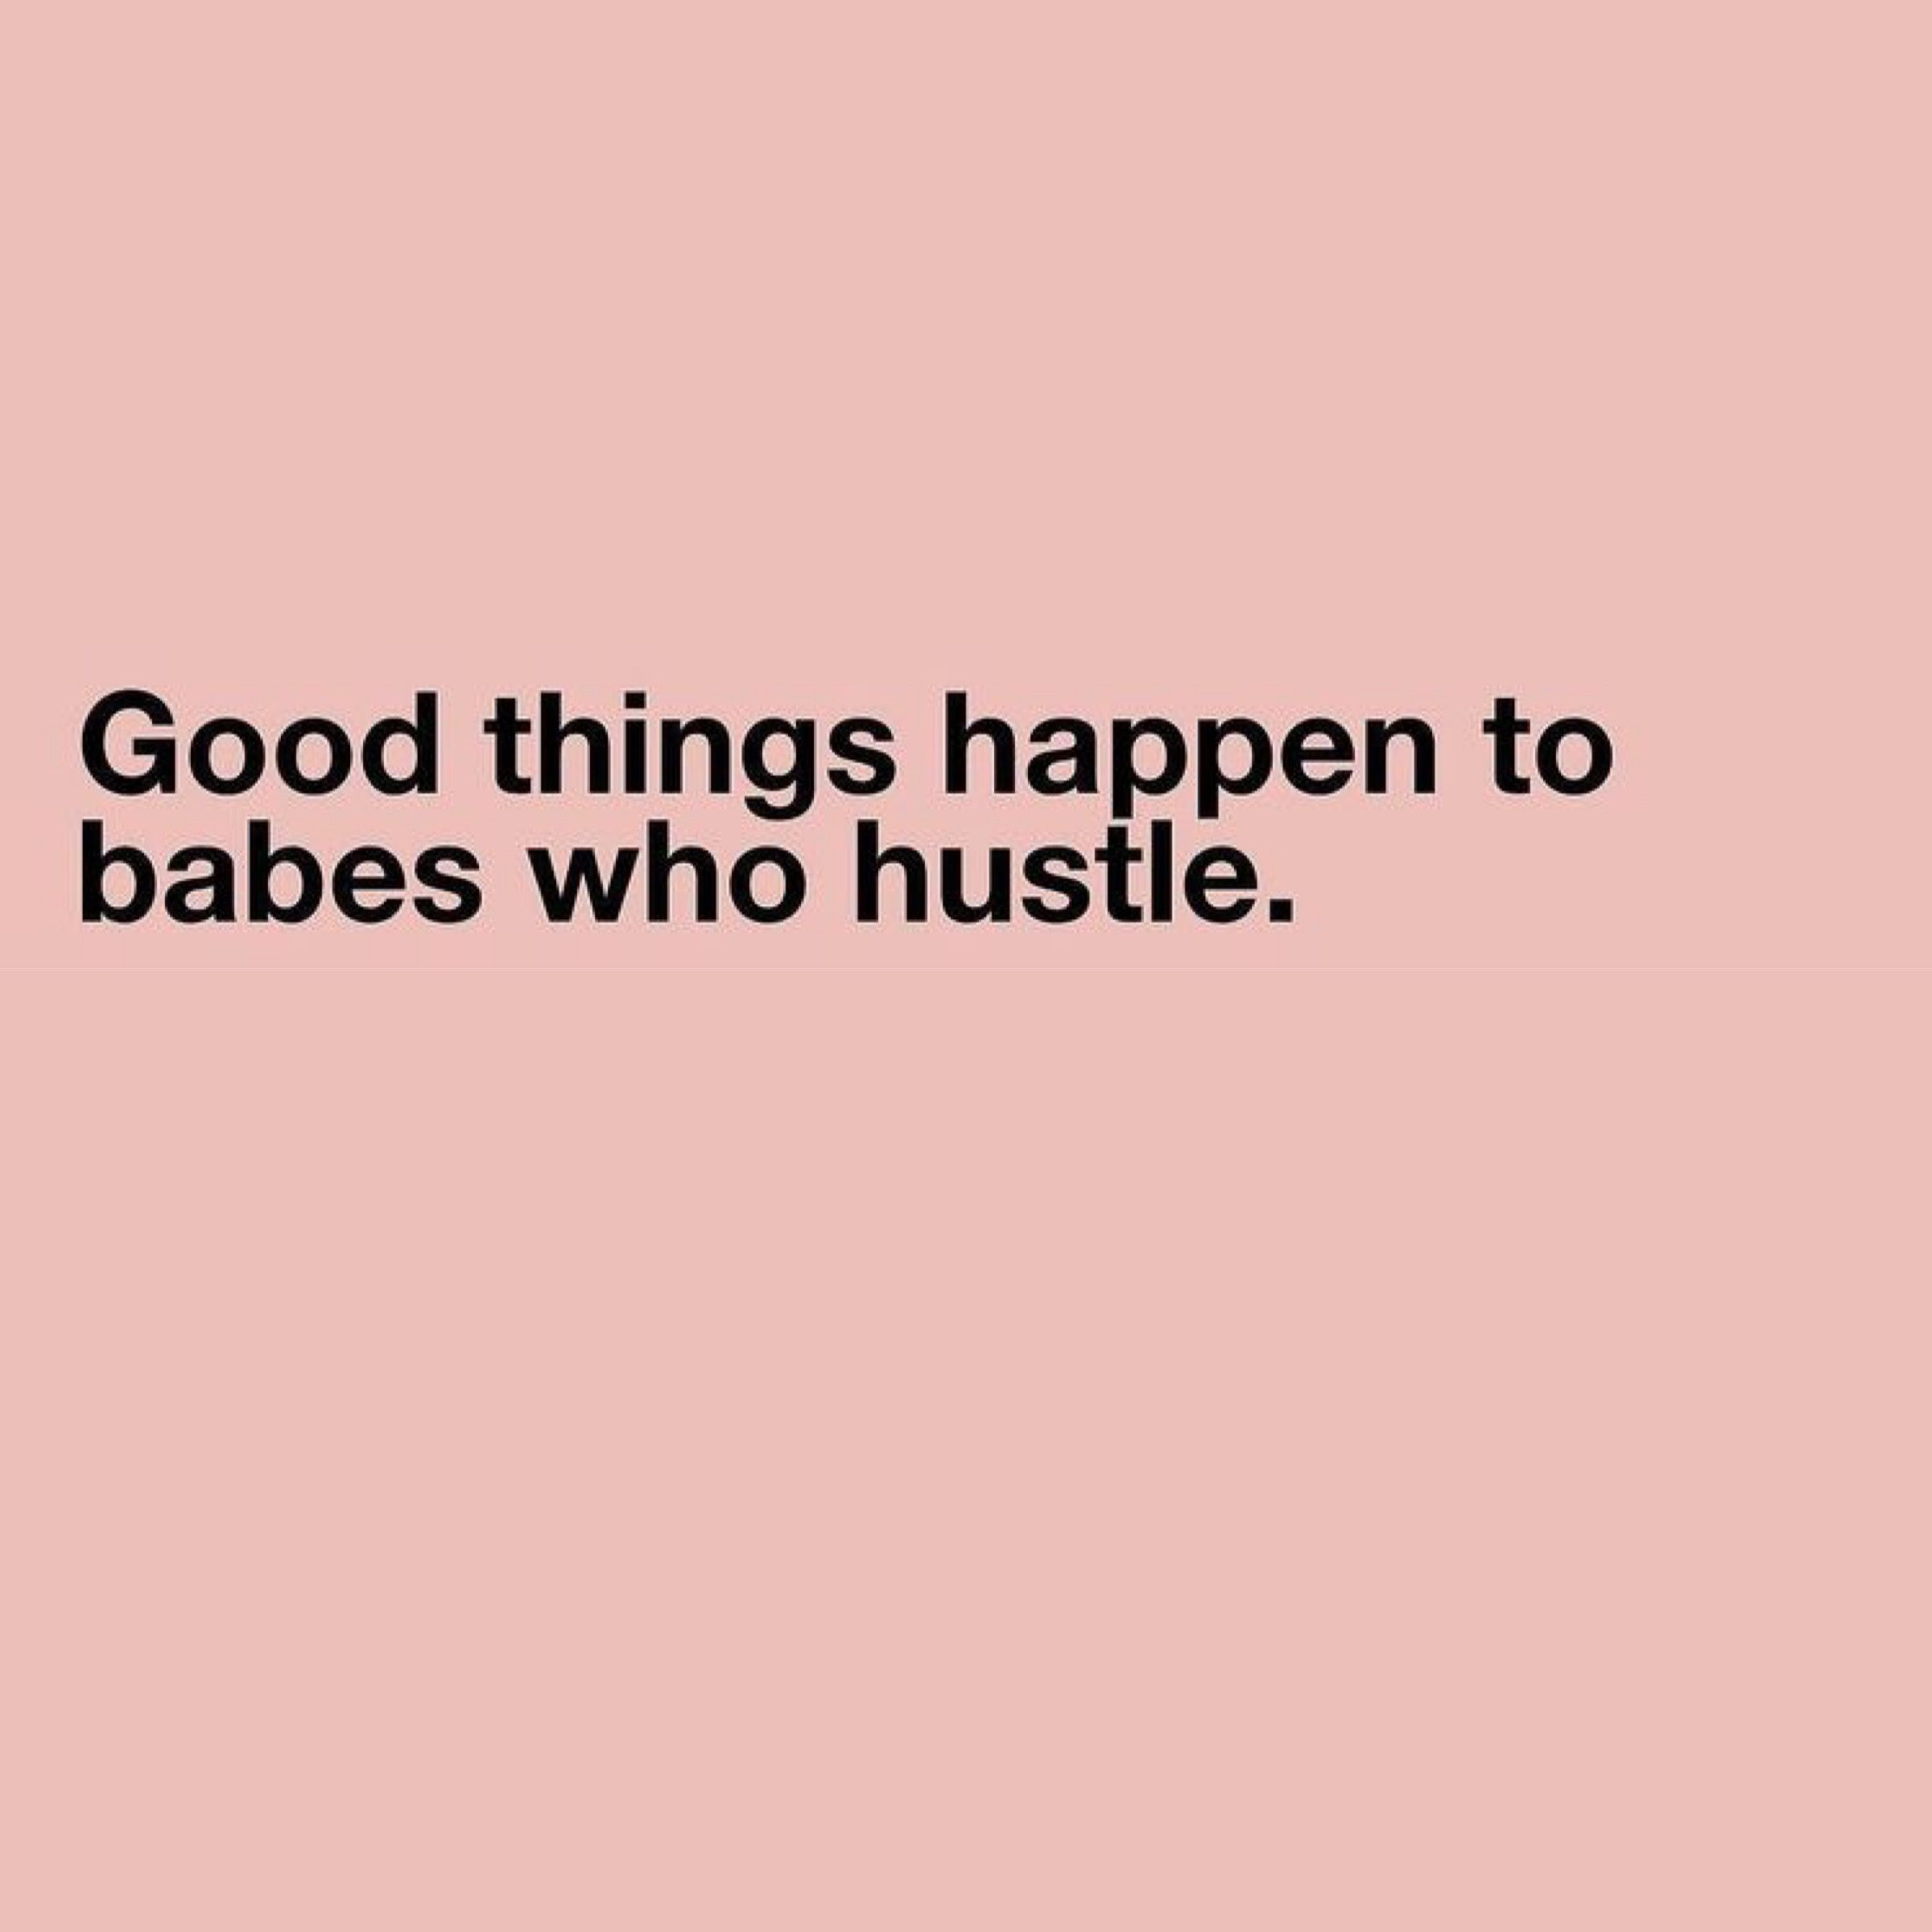 Hustle Quotes Extraordinary Keep Hustling   Food For Thought   Pinterest  Hustle Wisdom